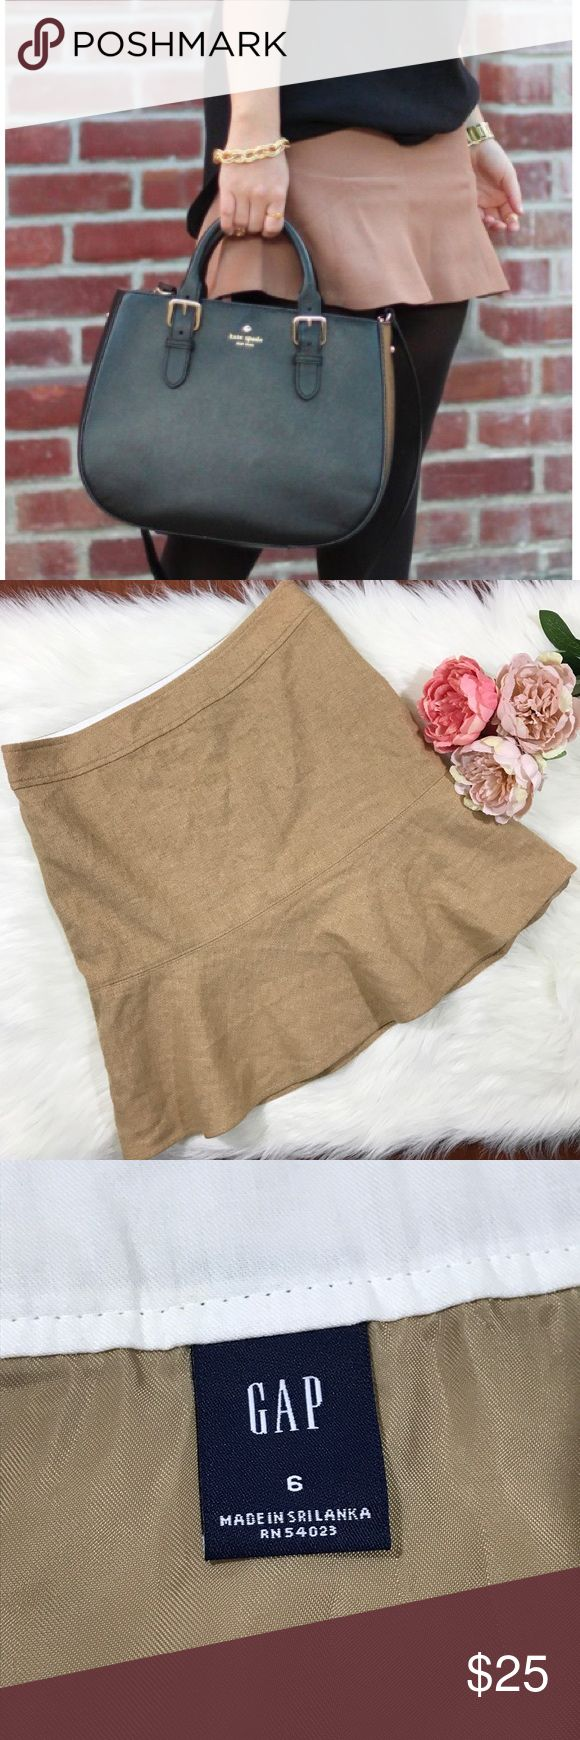 Gap Wool Camel/ Tan Trumpet Flare Hem Skirt Gap Wool Camel/ Tan Trumpet Flare Hem Skirt.  Features side zipper for easy access. Wool blend.   Gently used, excellent condition! Size 6. GAP Skirts A-Line or Full